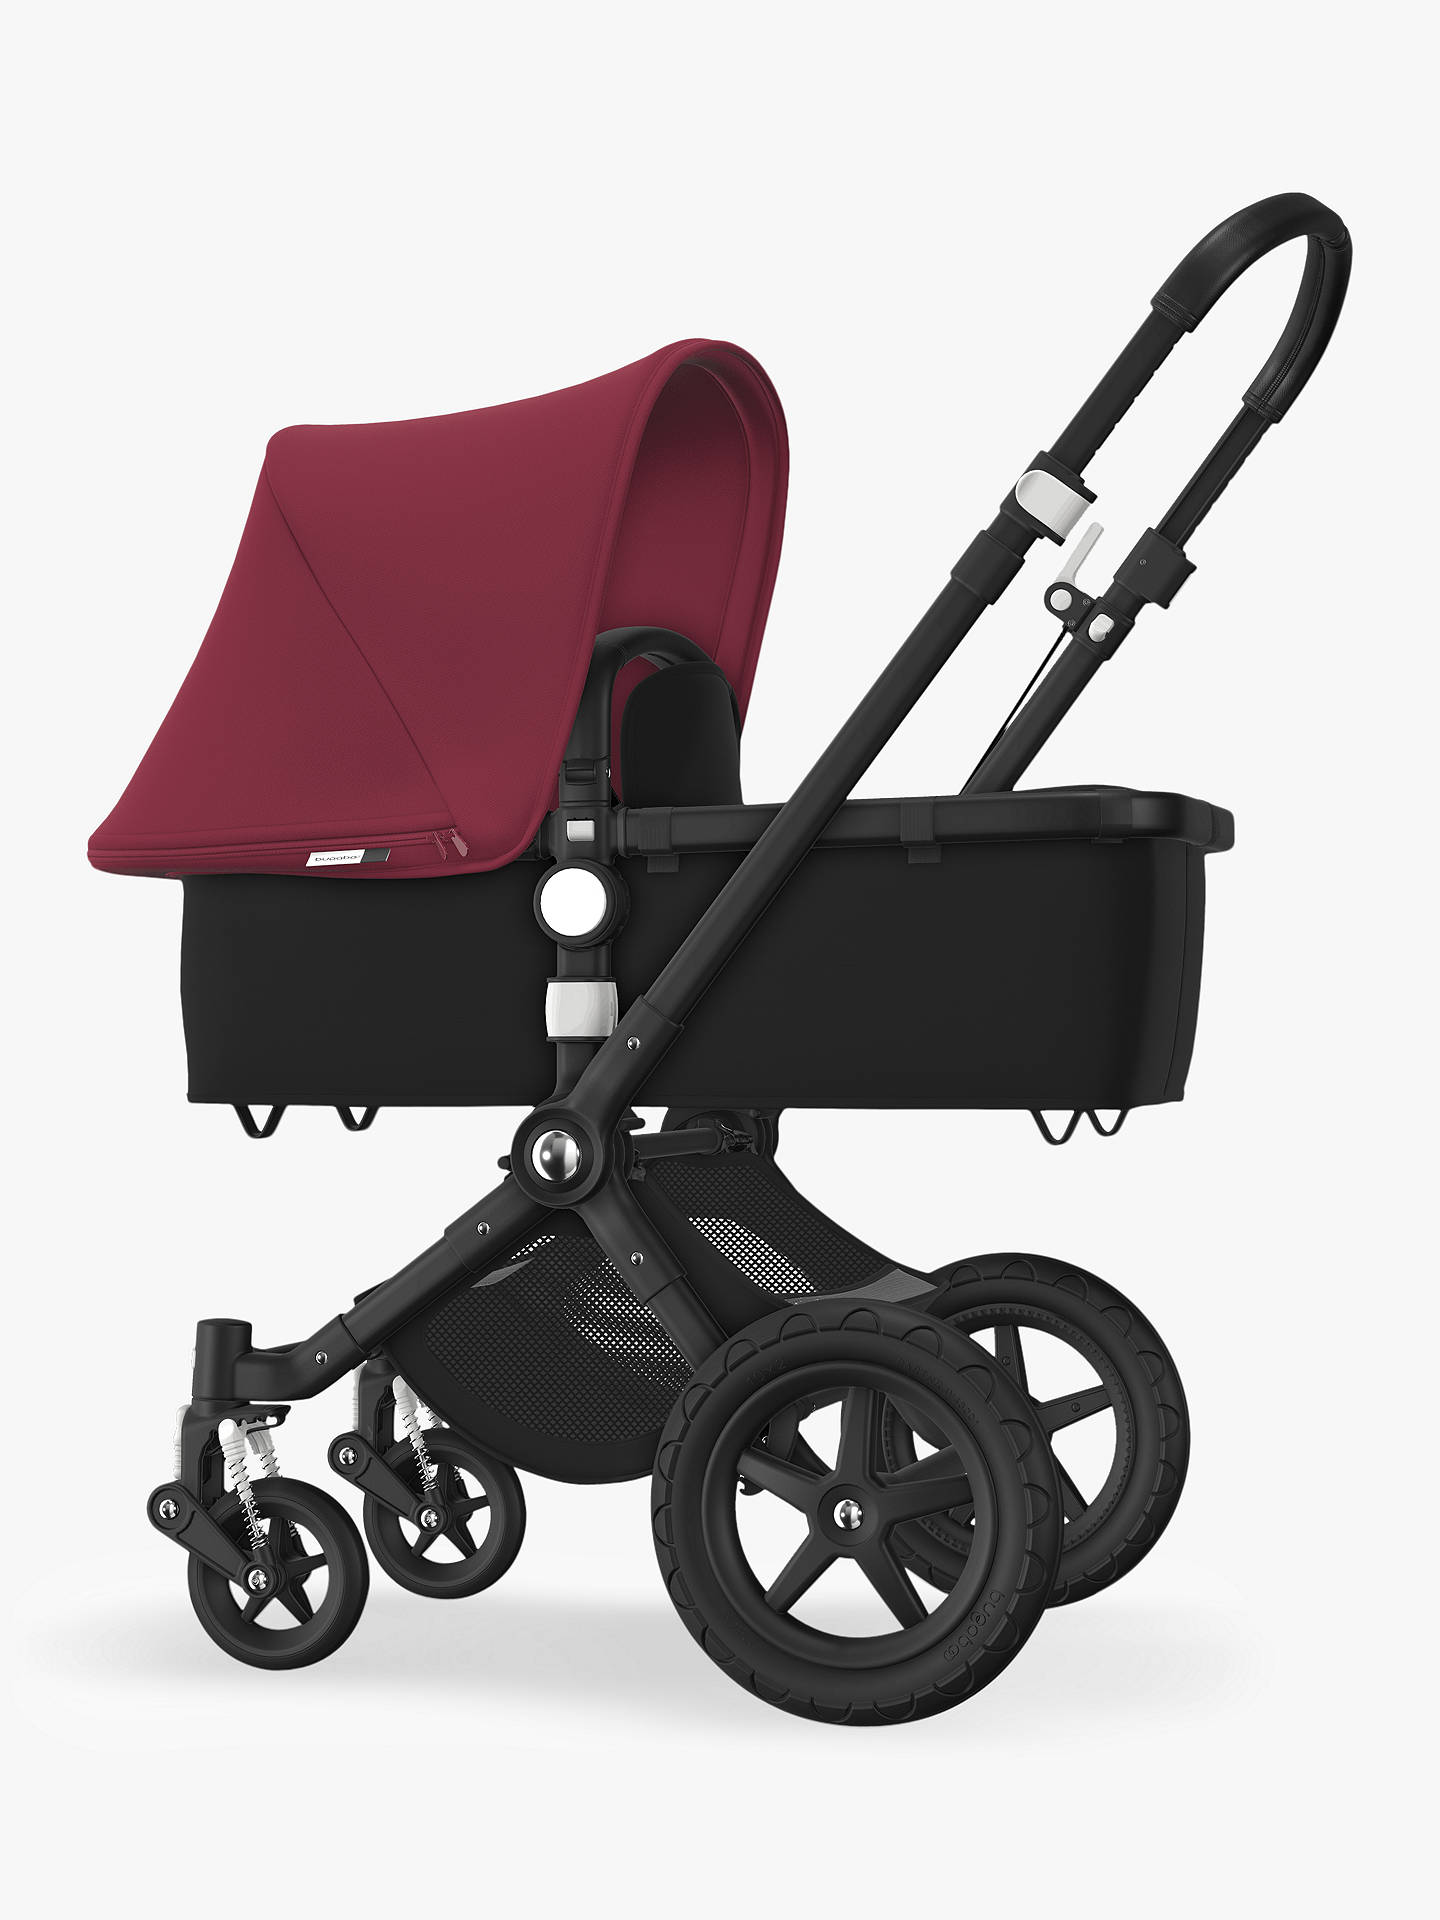 BuyBugaboo Cameleon3 Plus Complete Pushchair and Carrycot, Black/Black with Ruby Red Sun Canopy Online at johnlewis.com